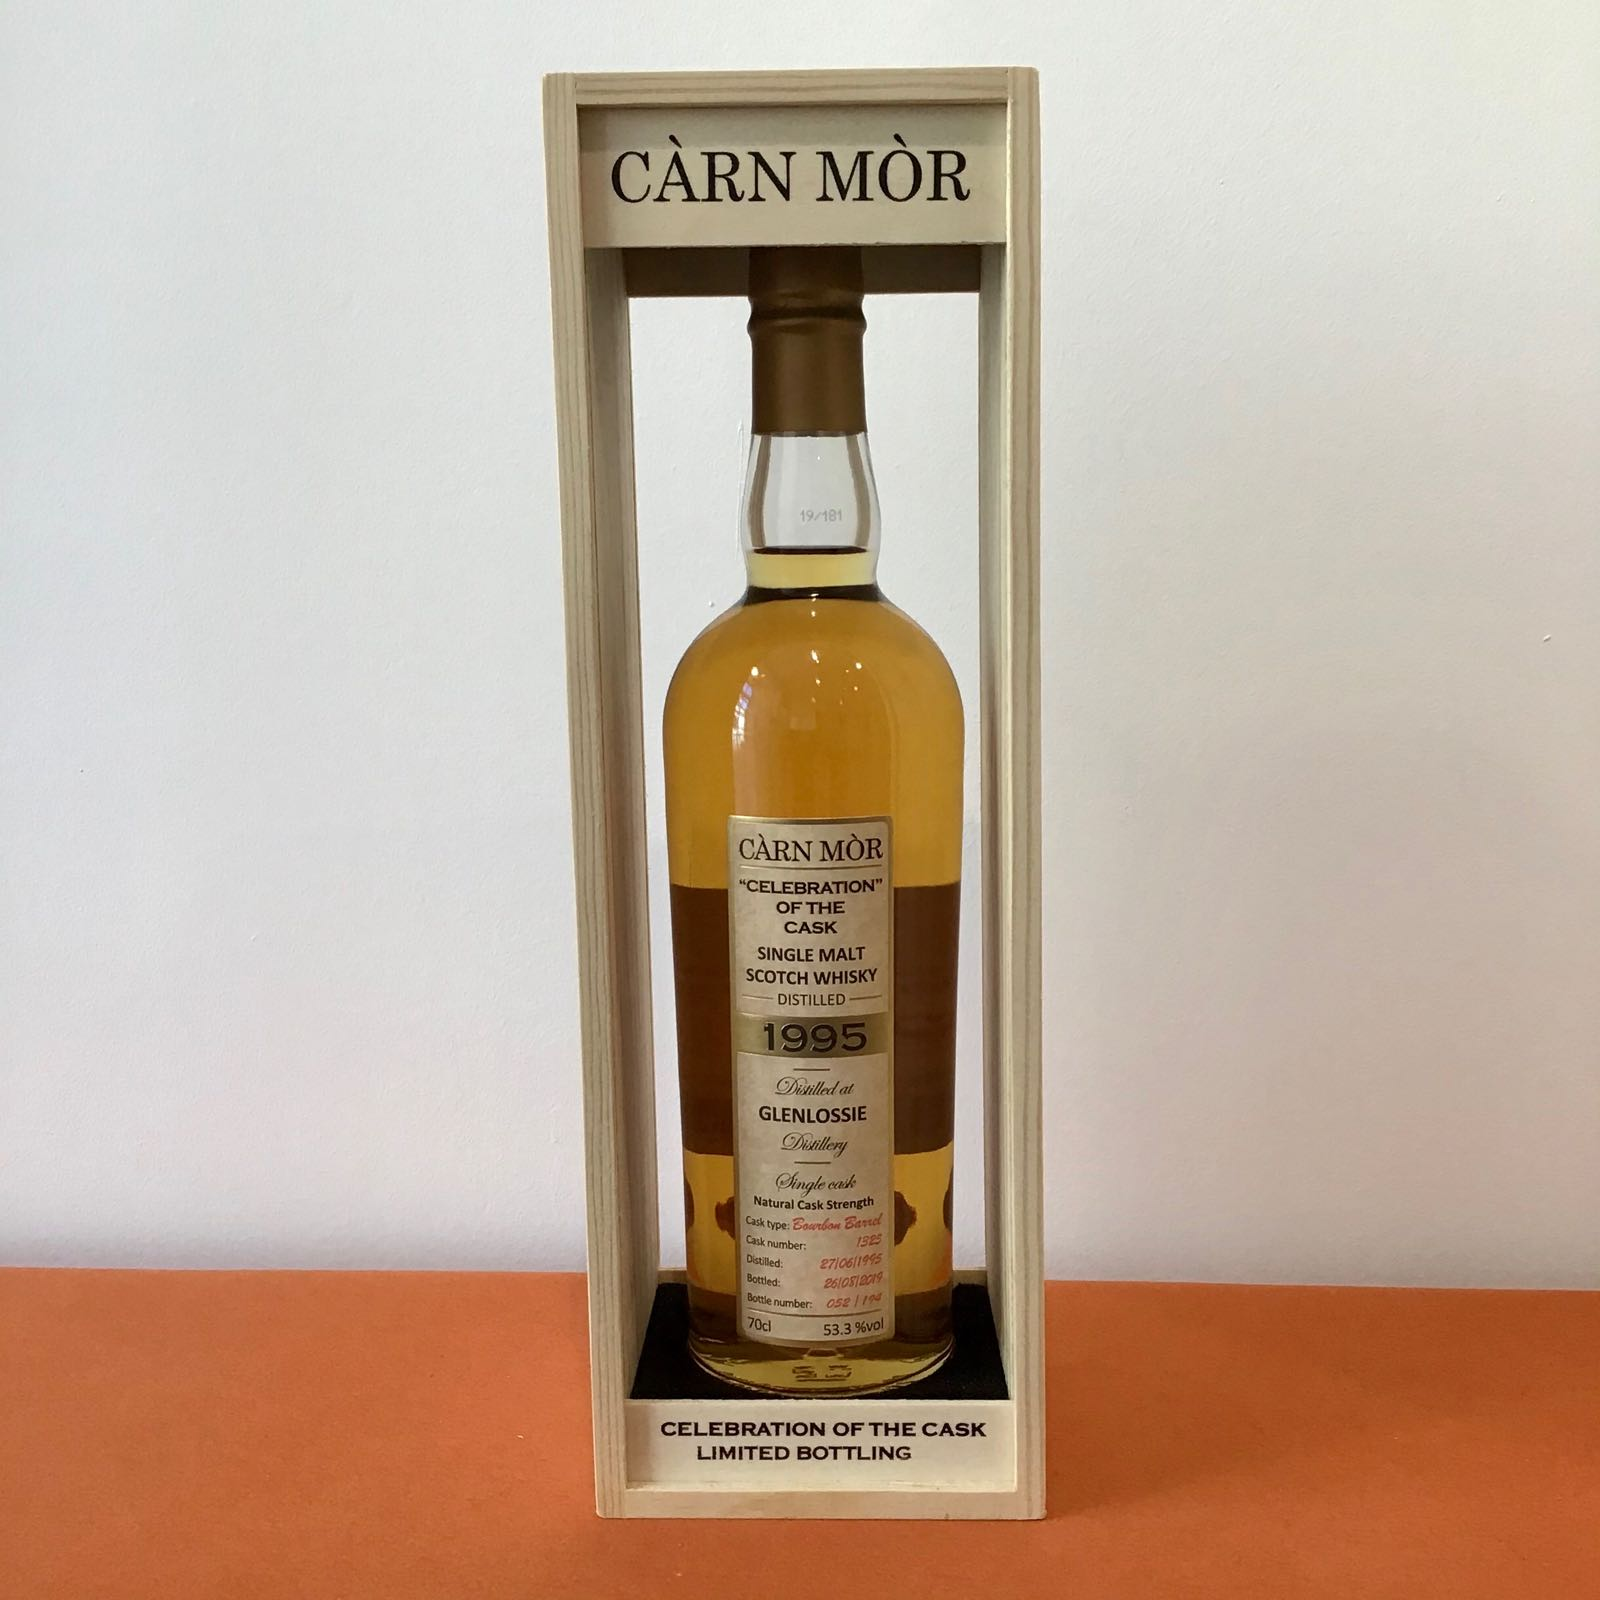 Carn Mor Celebration of the Cask: Glenlossie 1995